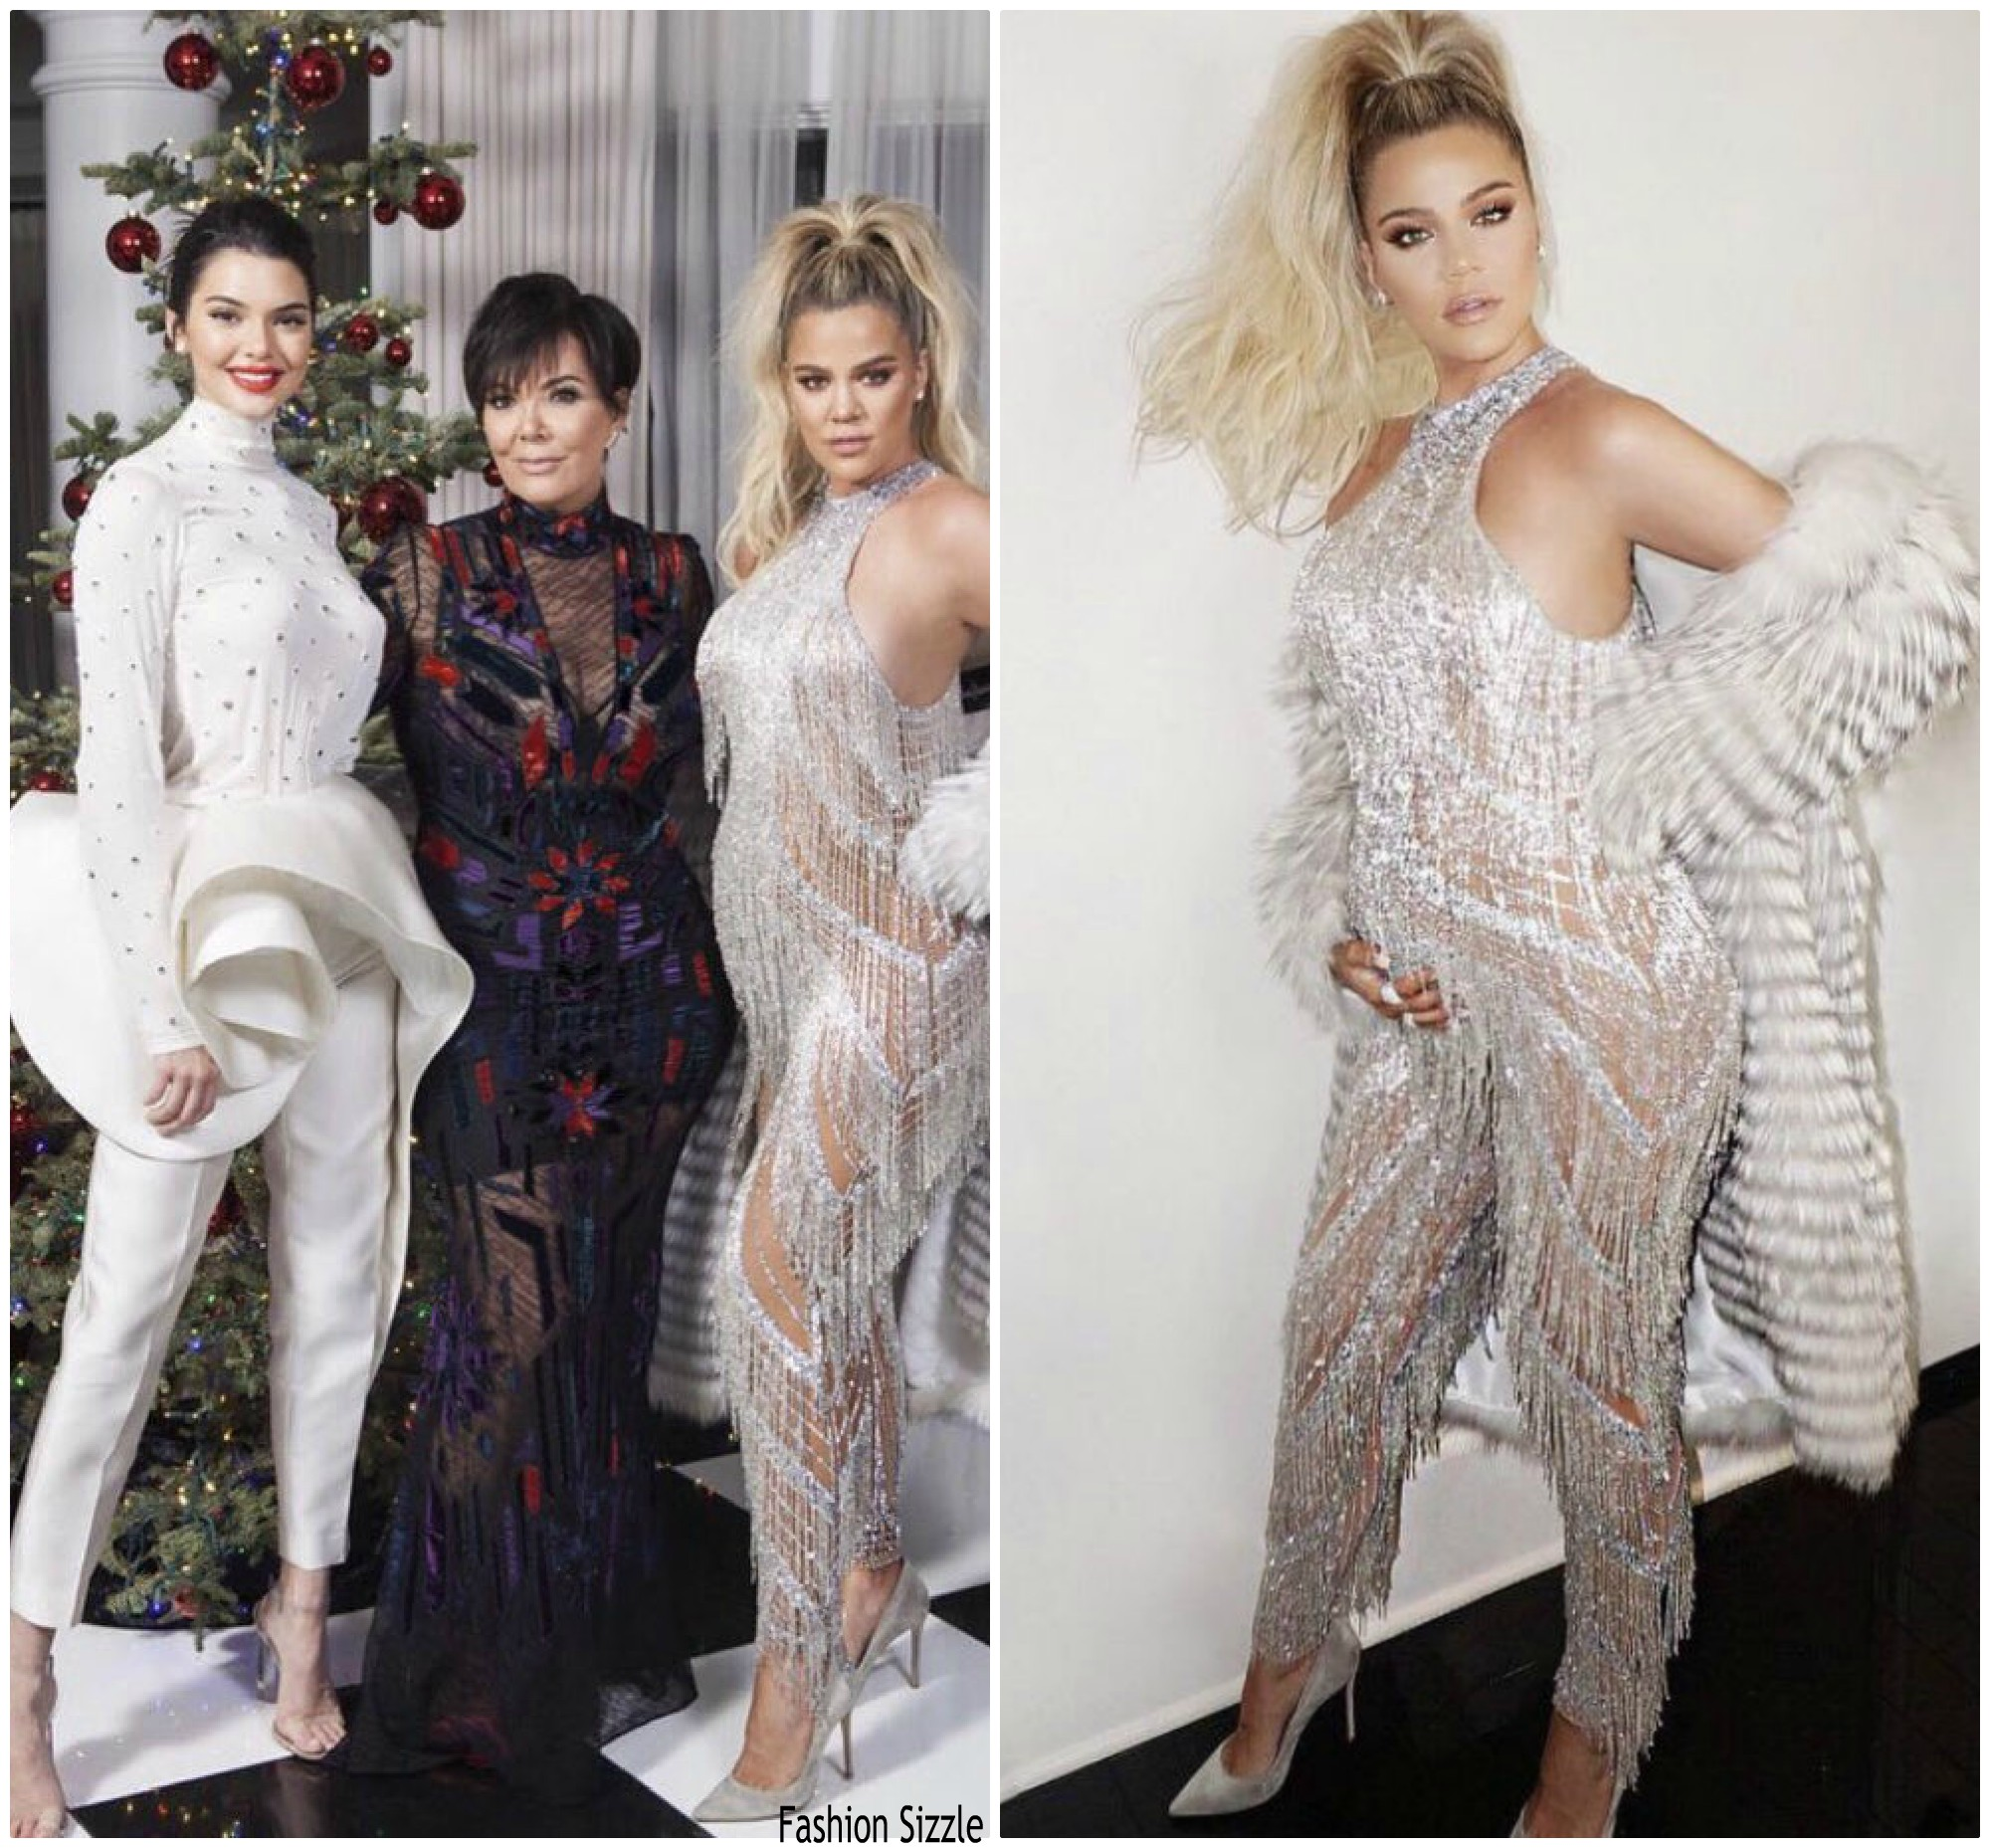 khloe-kardashian-shows-her-baby-bump-kardashian-christmas-party